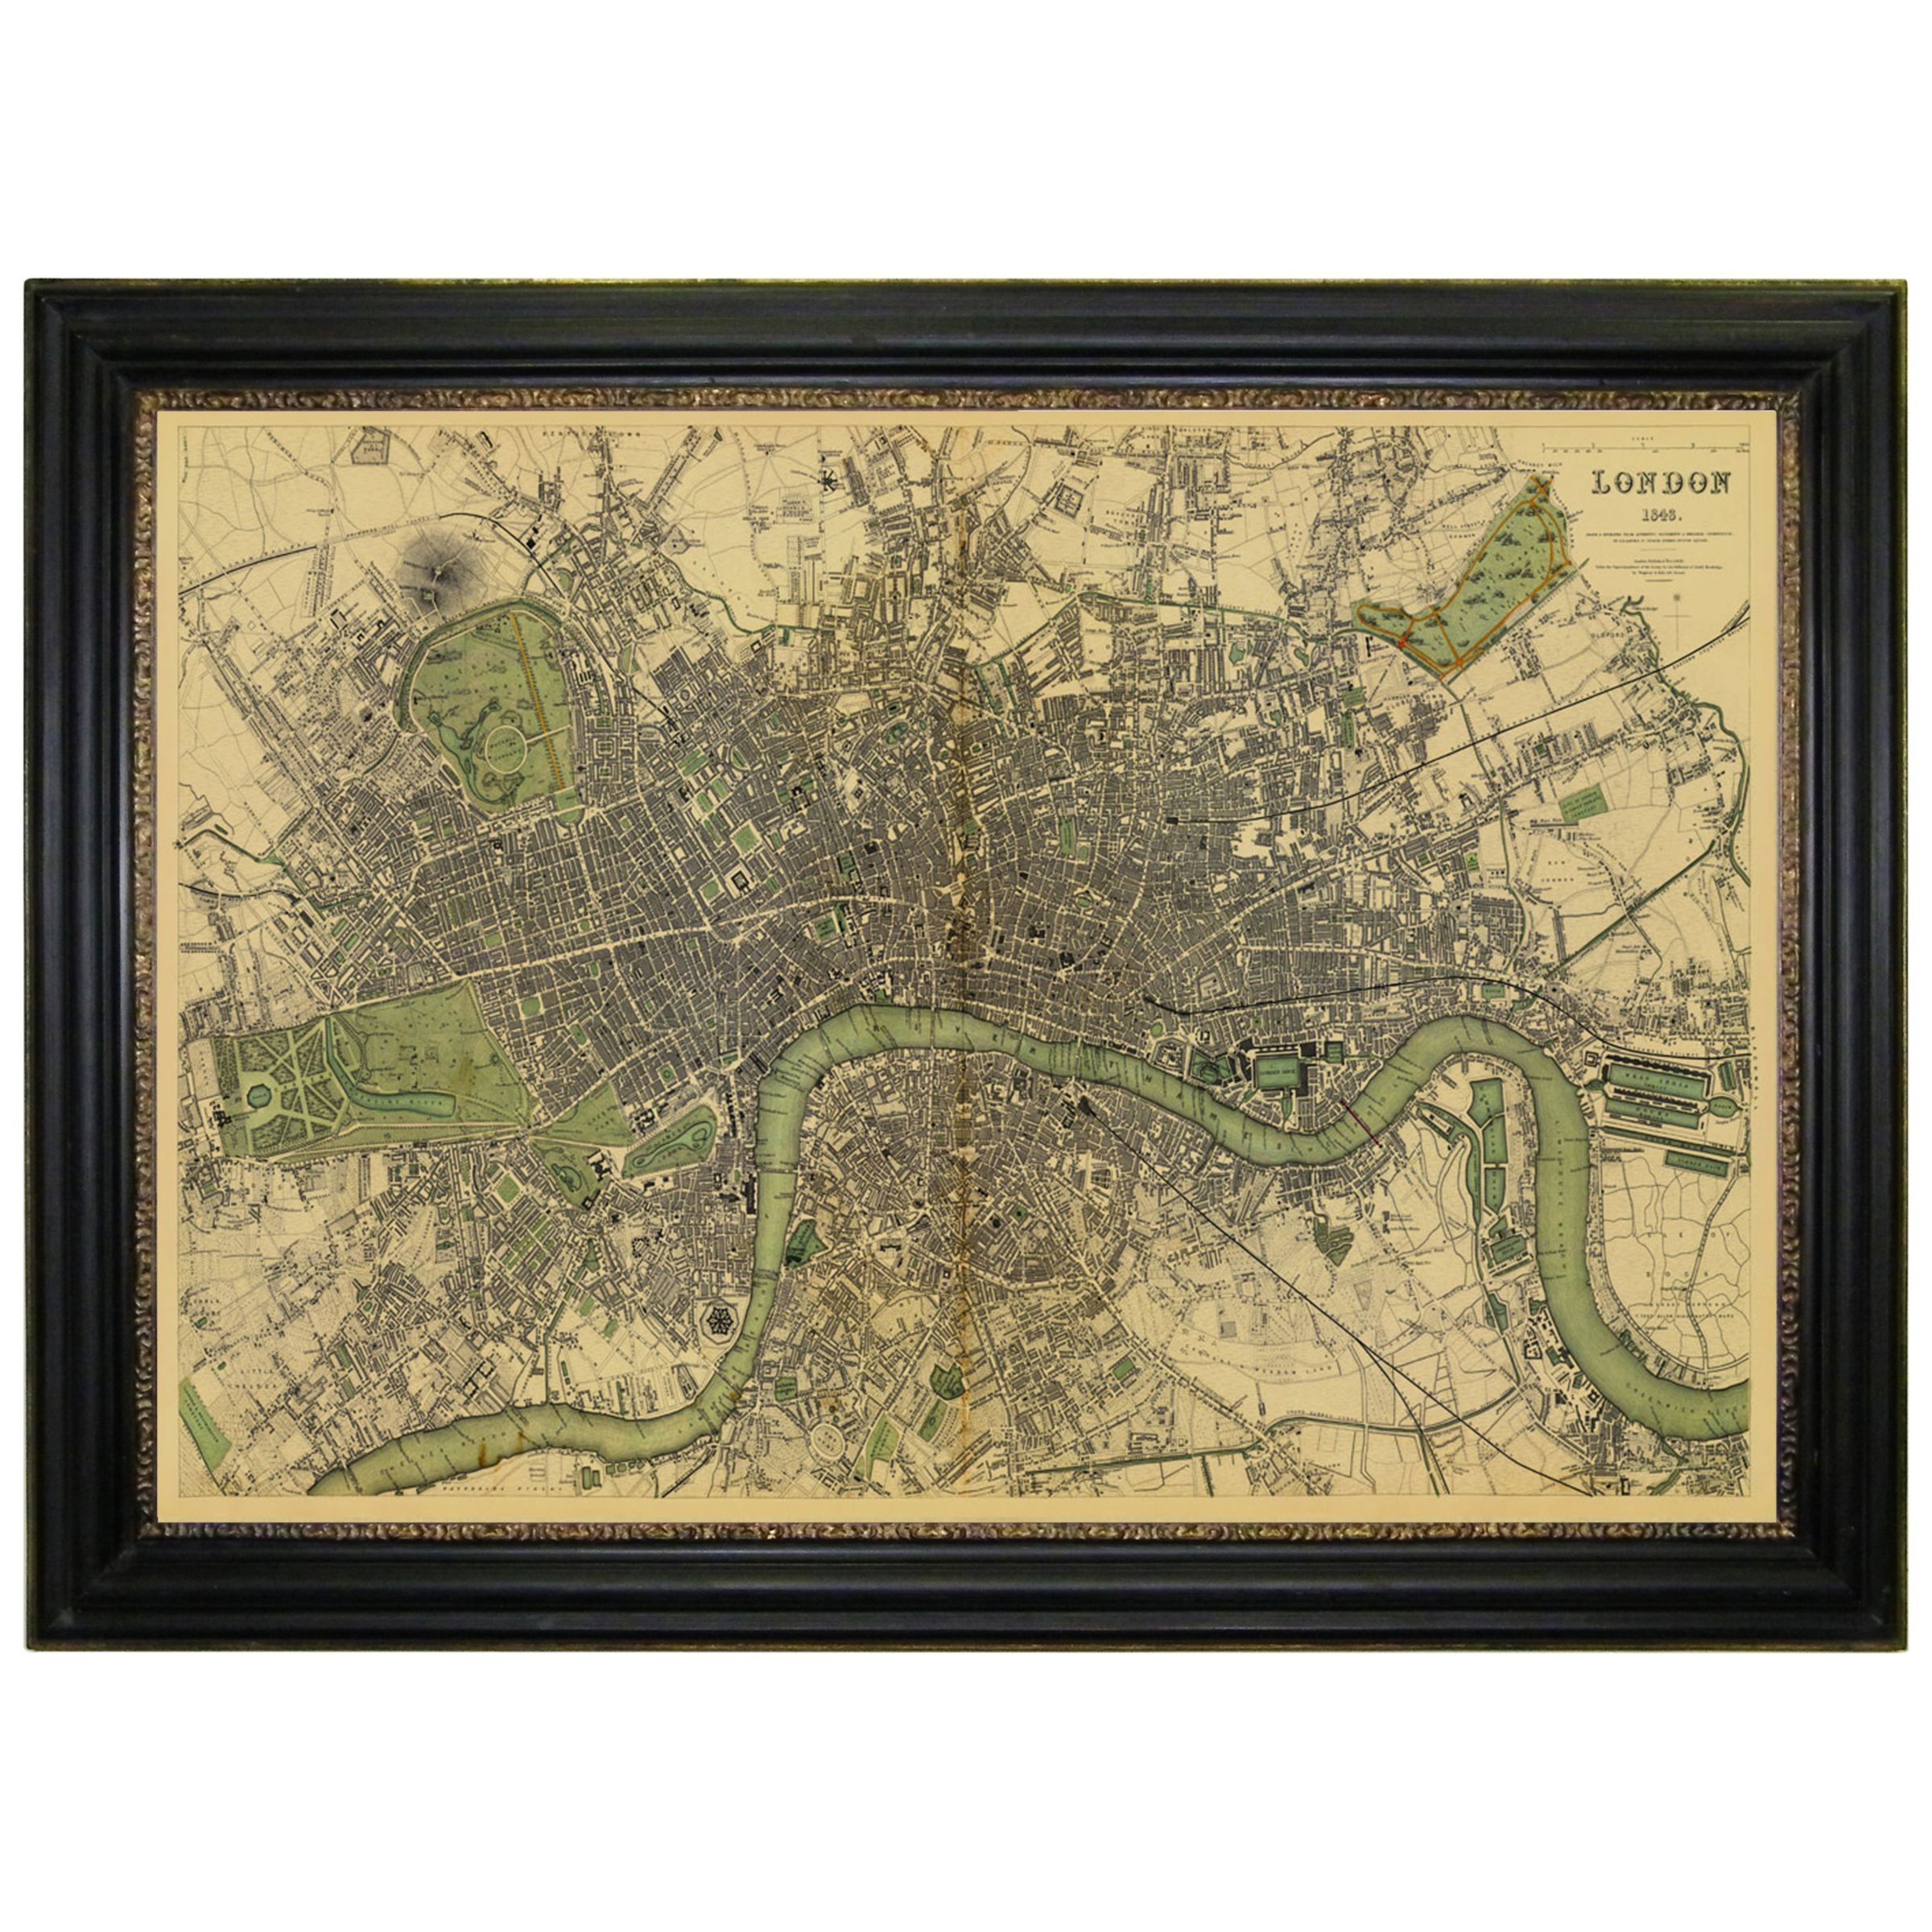 Brookpace Brookpace, Vintage Maps Collection - London Framed Print, 76 x 107cm